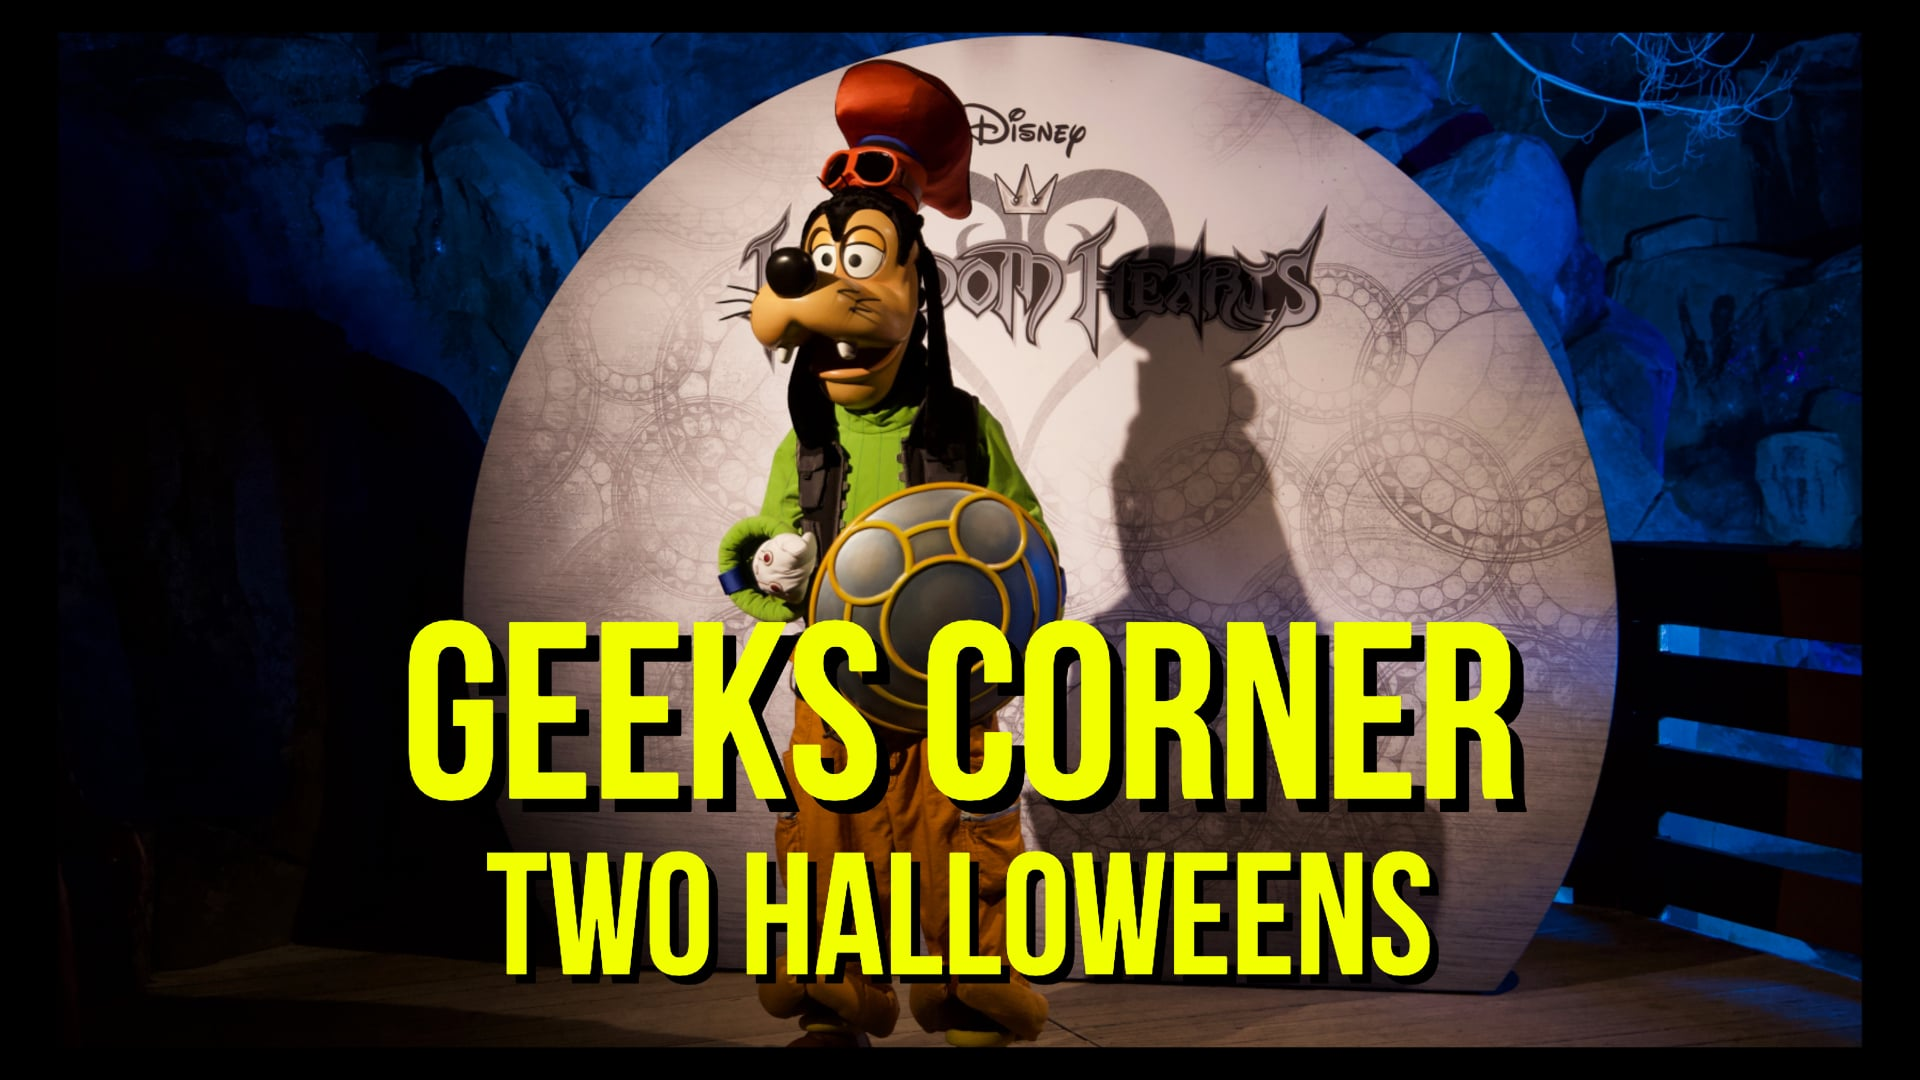 Two Halloweens - GEEKS CORNER